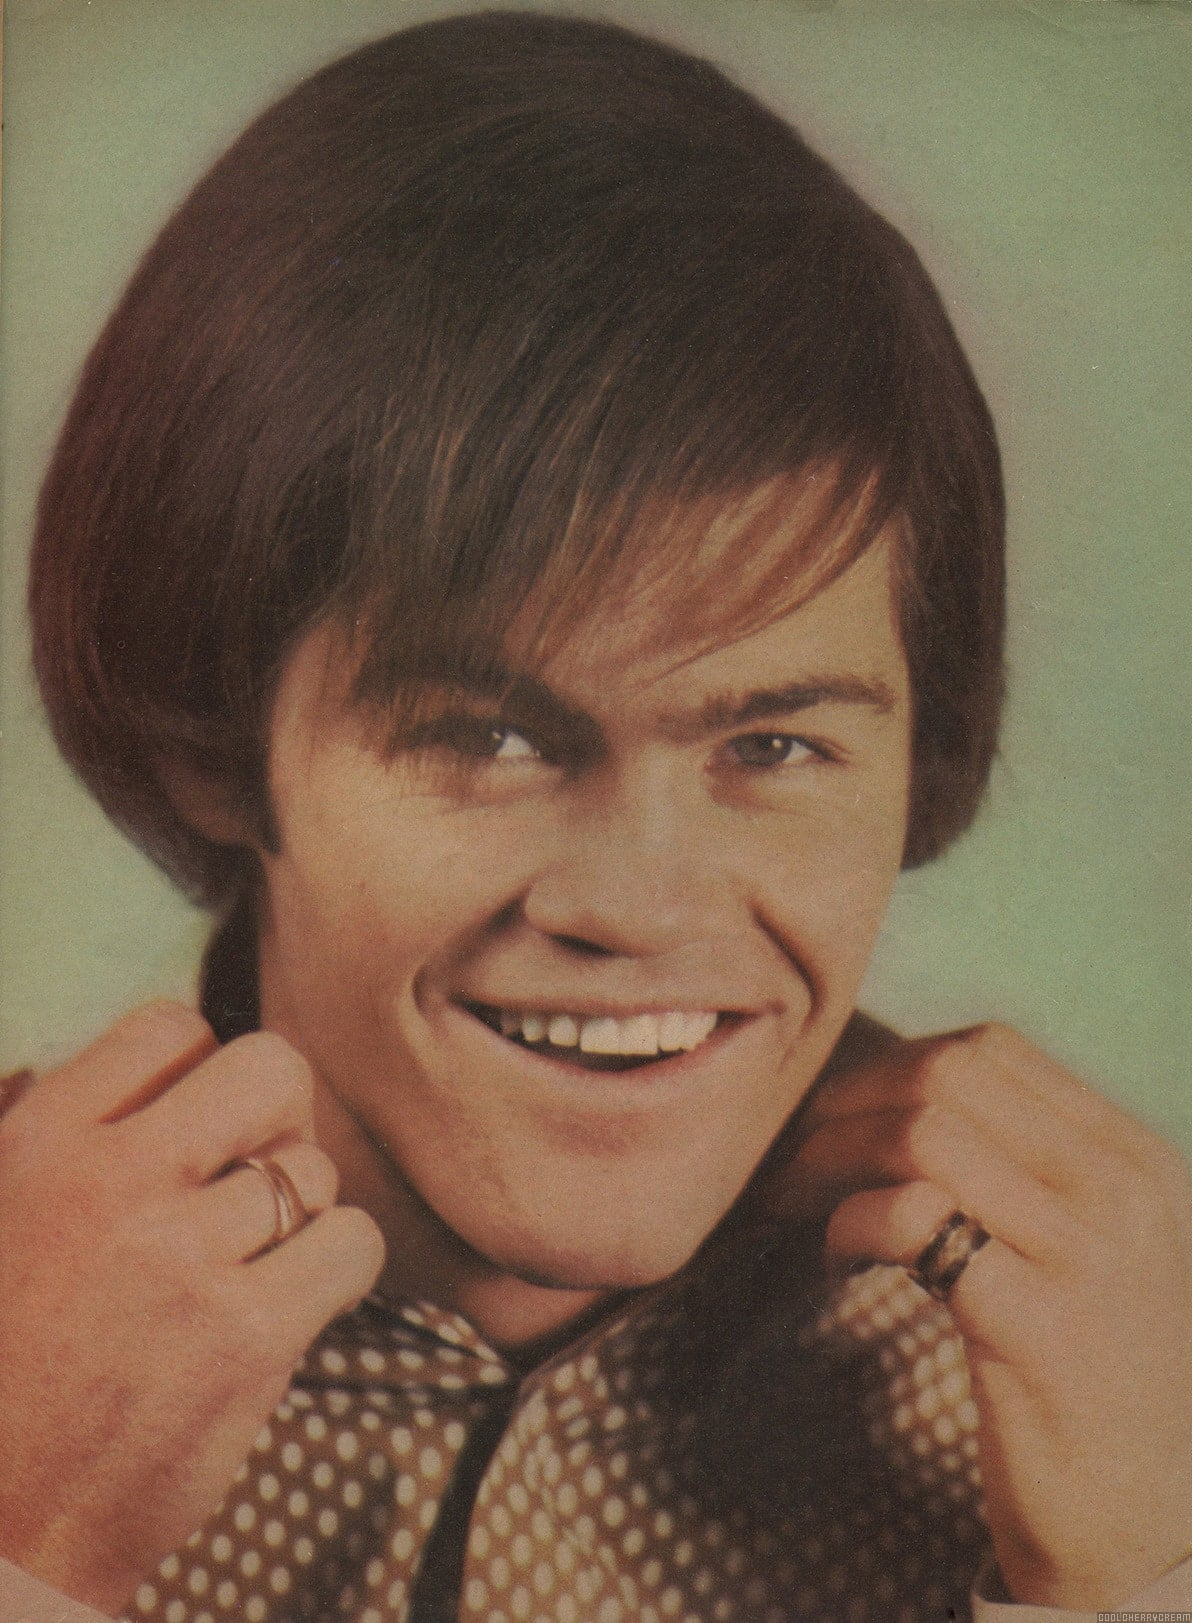 micky dolenzmicky dolenz interview, micky dolenz, micky dolenz monkees, micky dolenz biography, micky dolenz youtube, micky dolenz discography, micky dolenz net worth, micky dolenz daughter, micky dolenz circus boy, micky dolenz tour, micky dolenz tour dates, micky dolenz imdb, micky dolenz 2015, micky dolenz twitter, micky dolenz facebook, micky dolenz furniture, micky dolenz the mgm singles collection, micky dolenz wife, micky dolenz going down, micky dolenz daughter actress